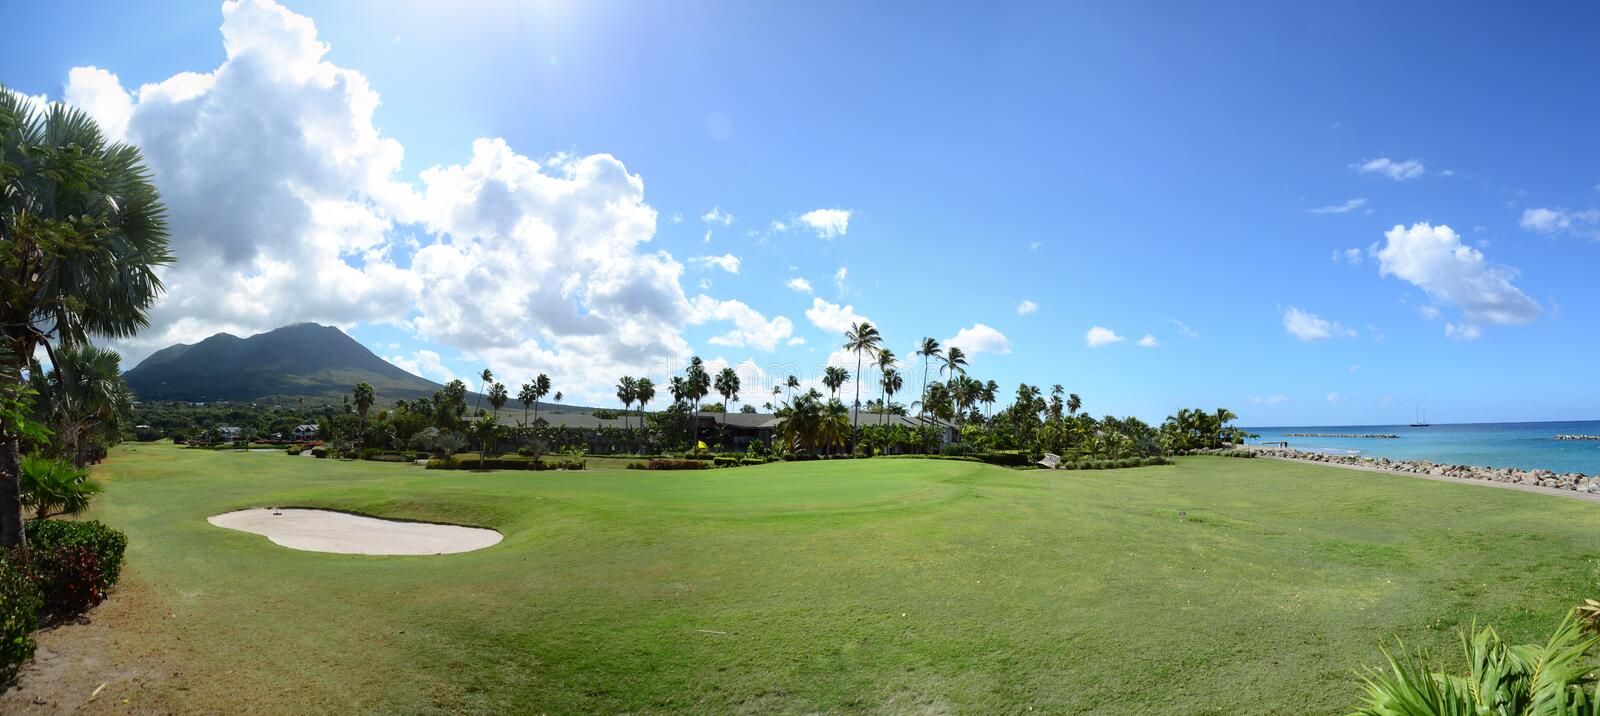 Download Nevis Peak In The Background Of The Golf Course Stock Photo - Image: 29607250